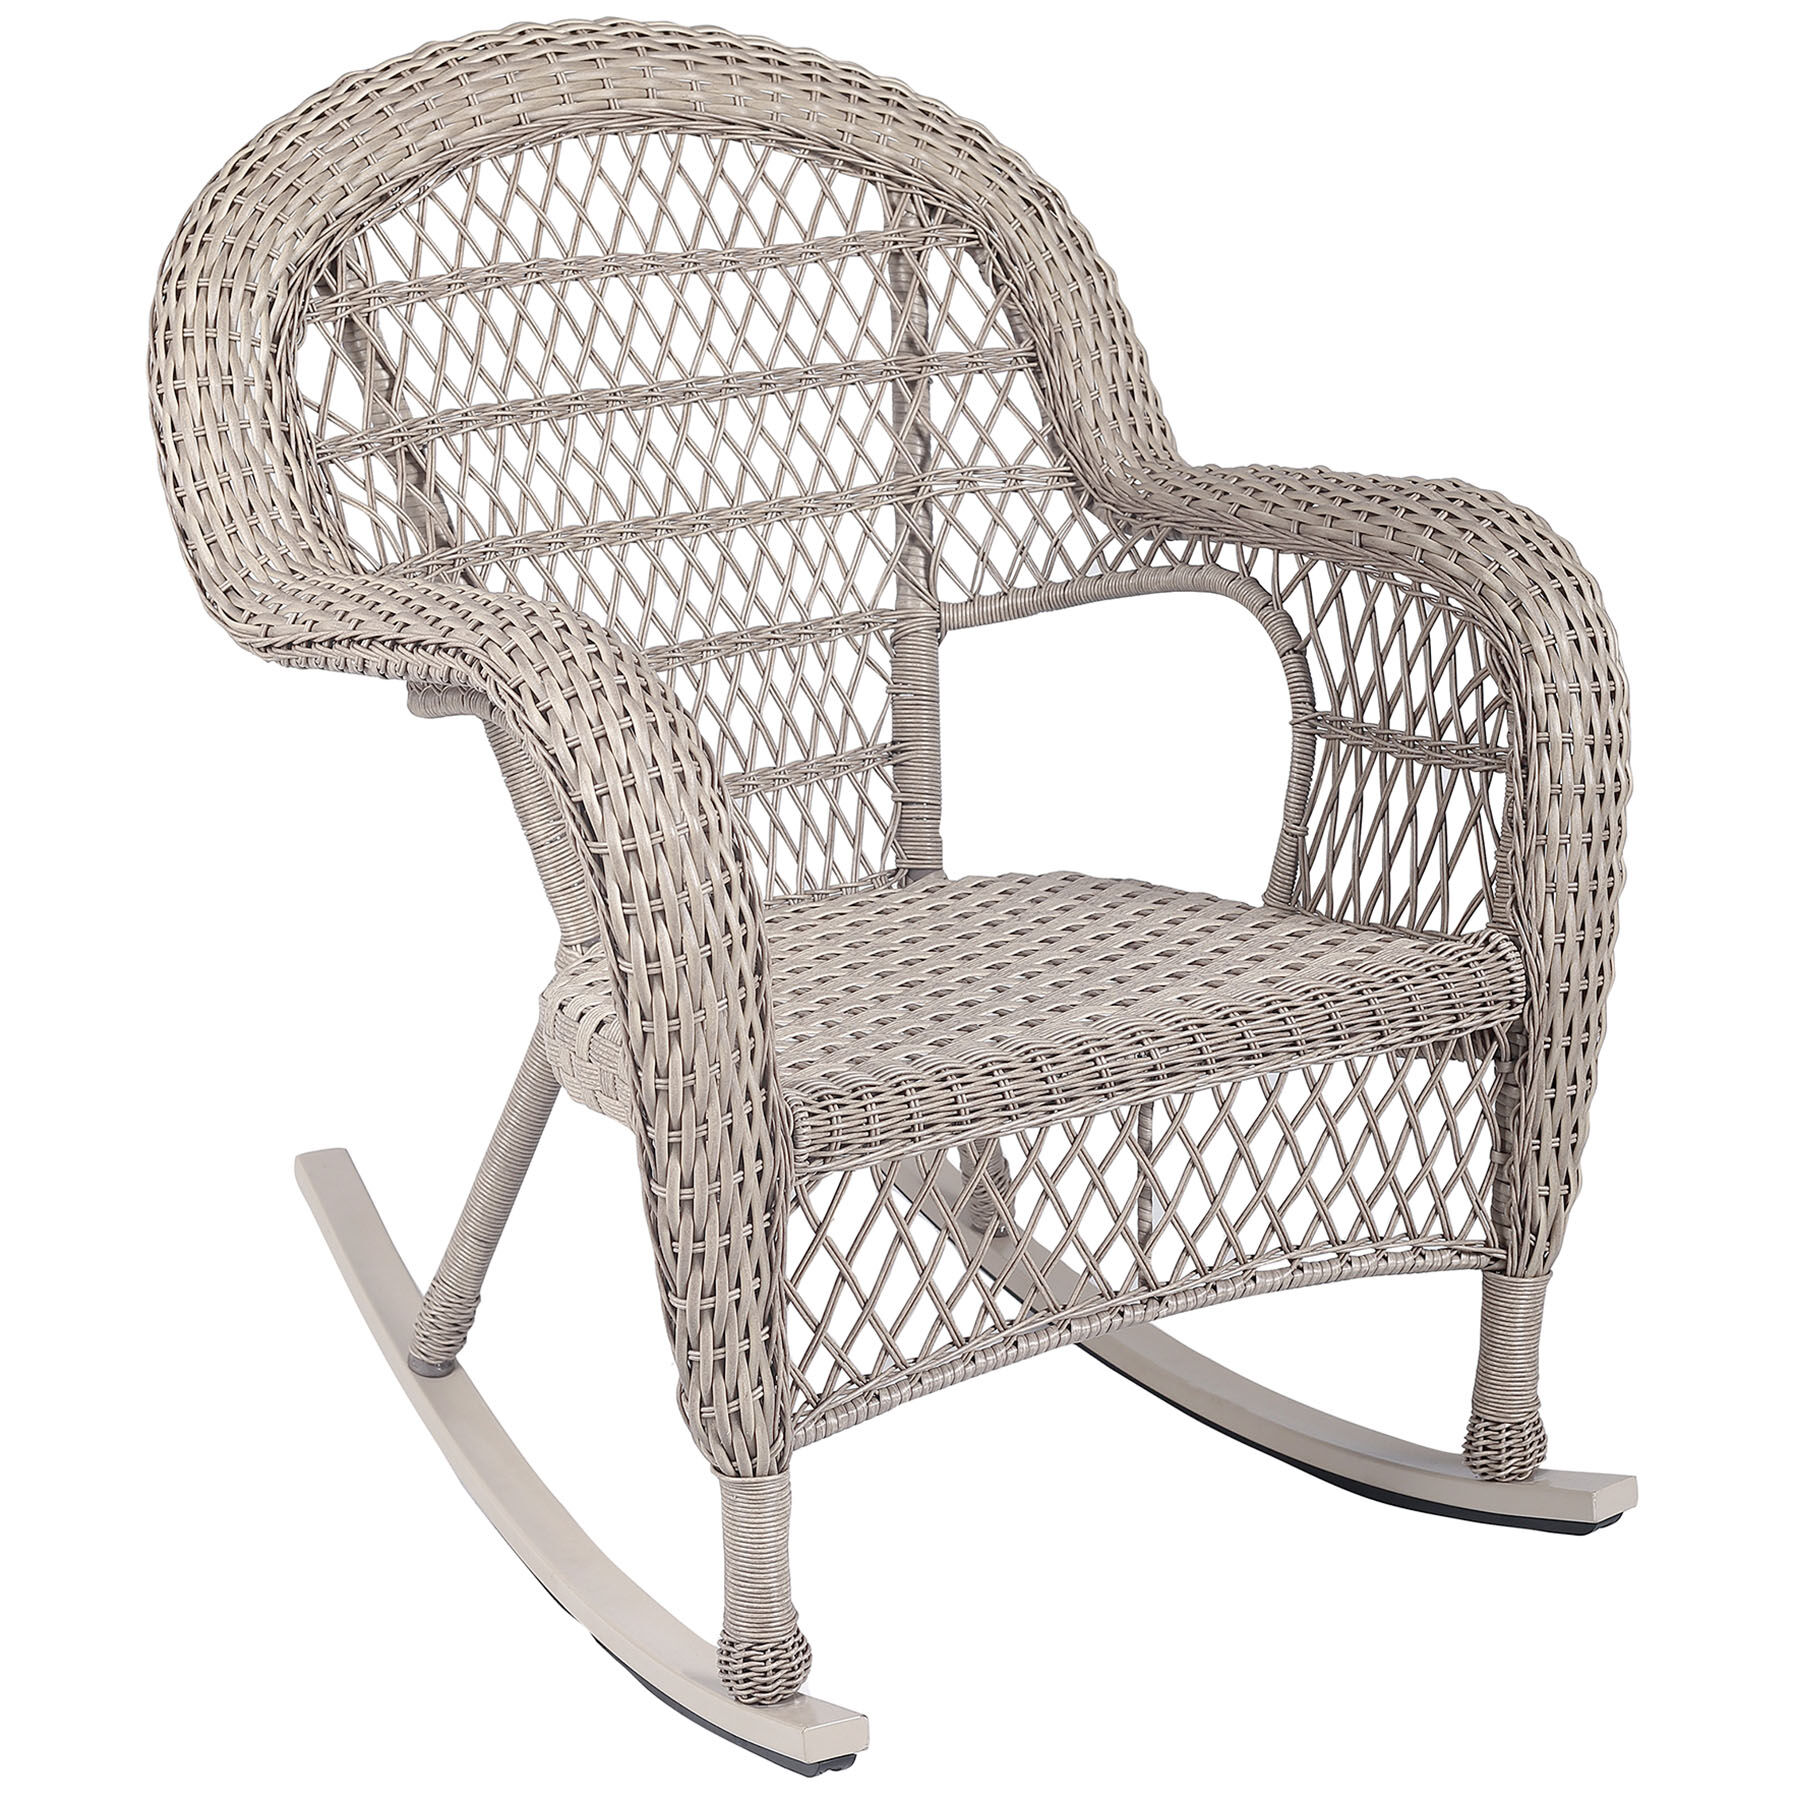 Wicker Rocking Chair Stackable Wicker Rocking Chair Taupe At Home